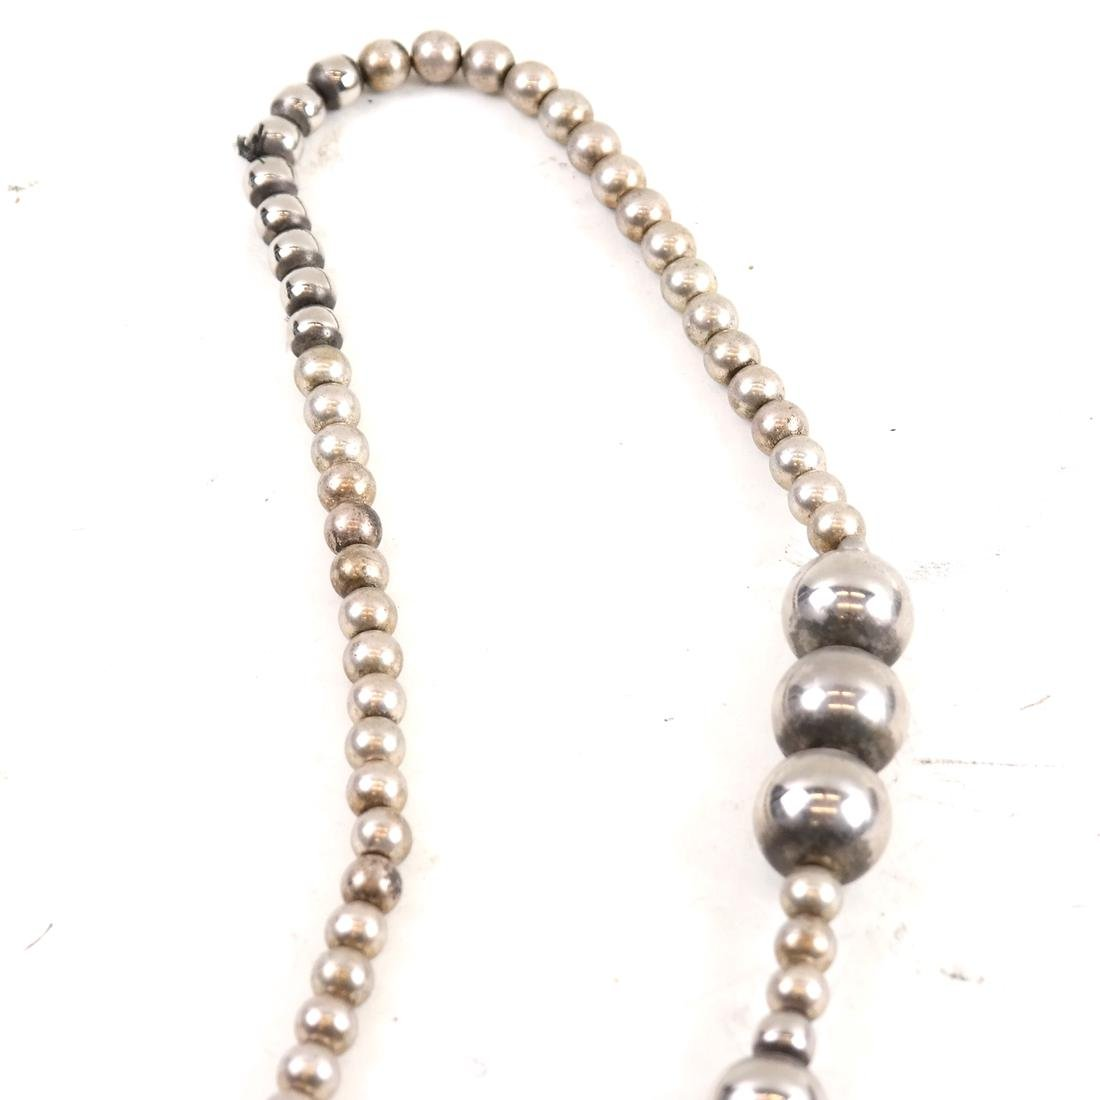 Asymmetrical Hardstone Necklace - 4